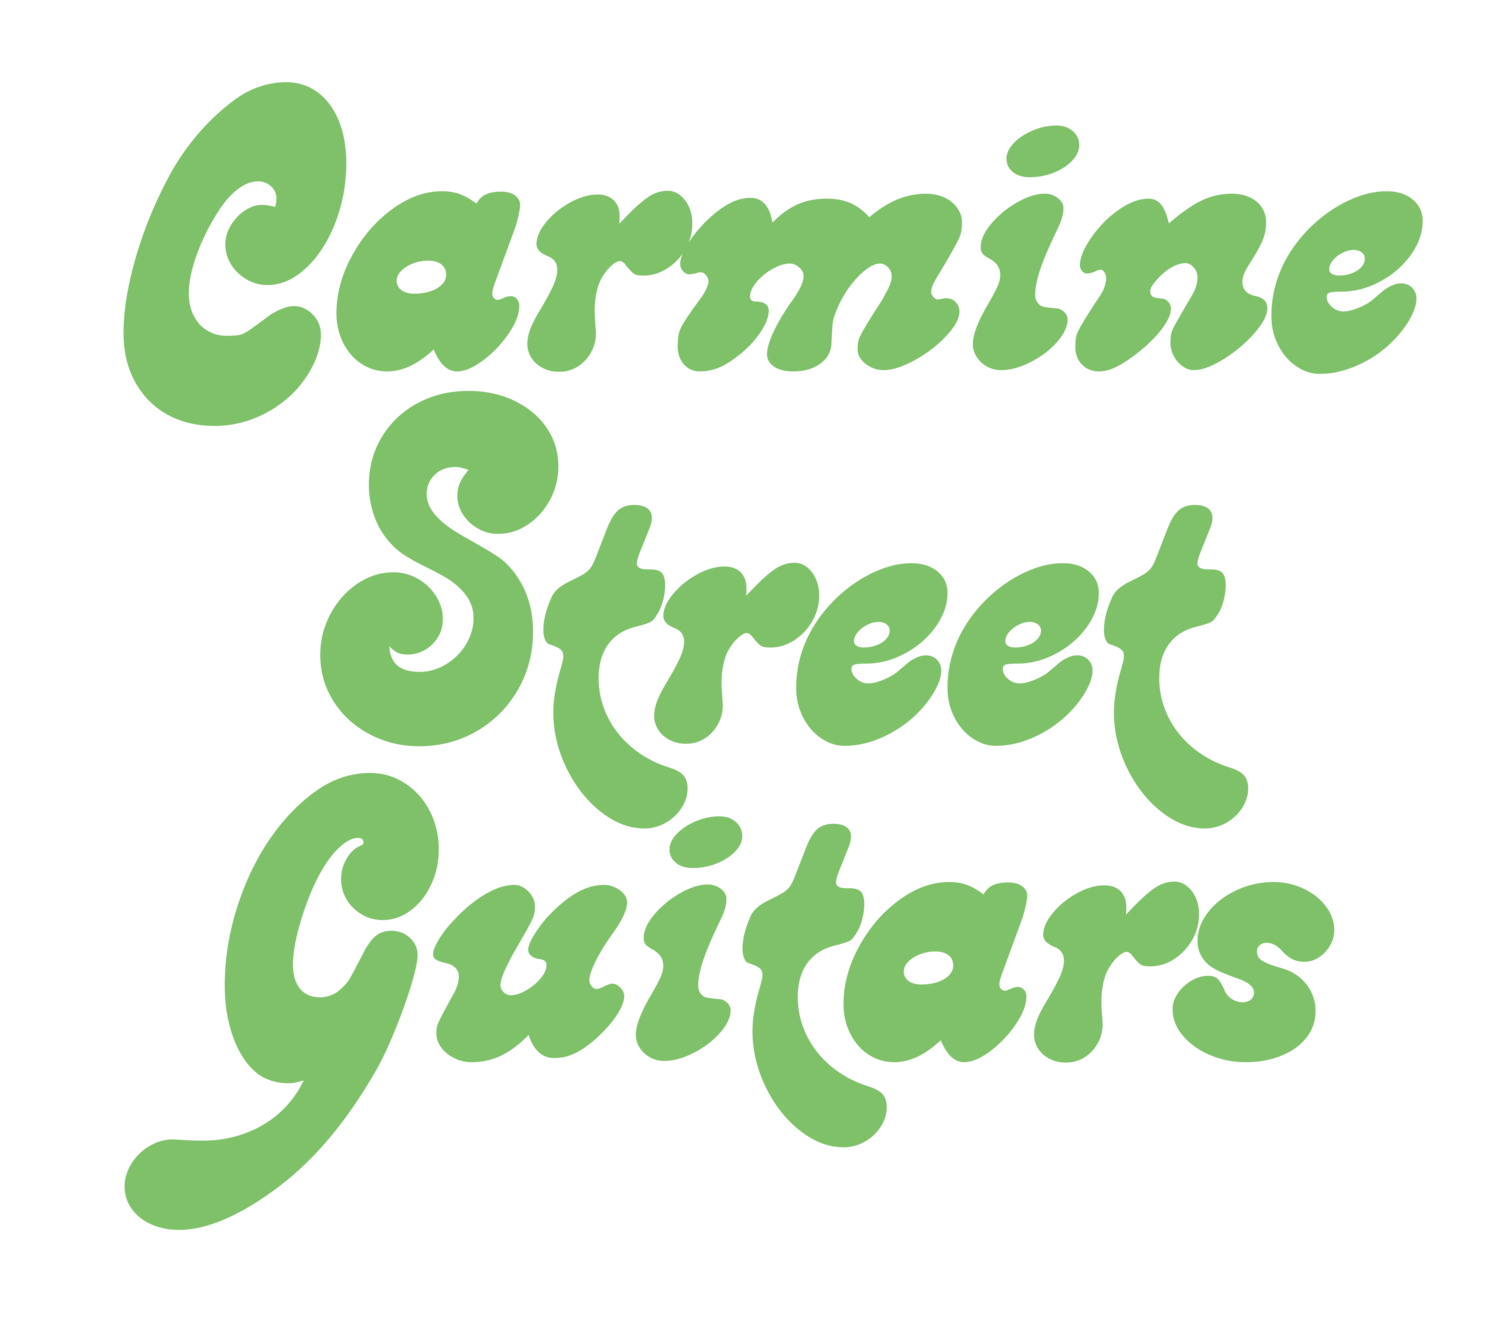 Carmine Street Guitars — Documentary Film